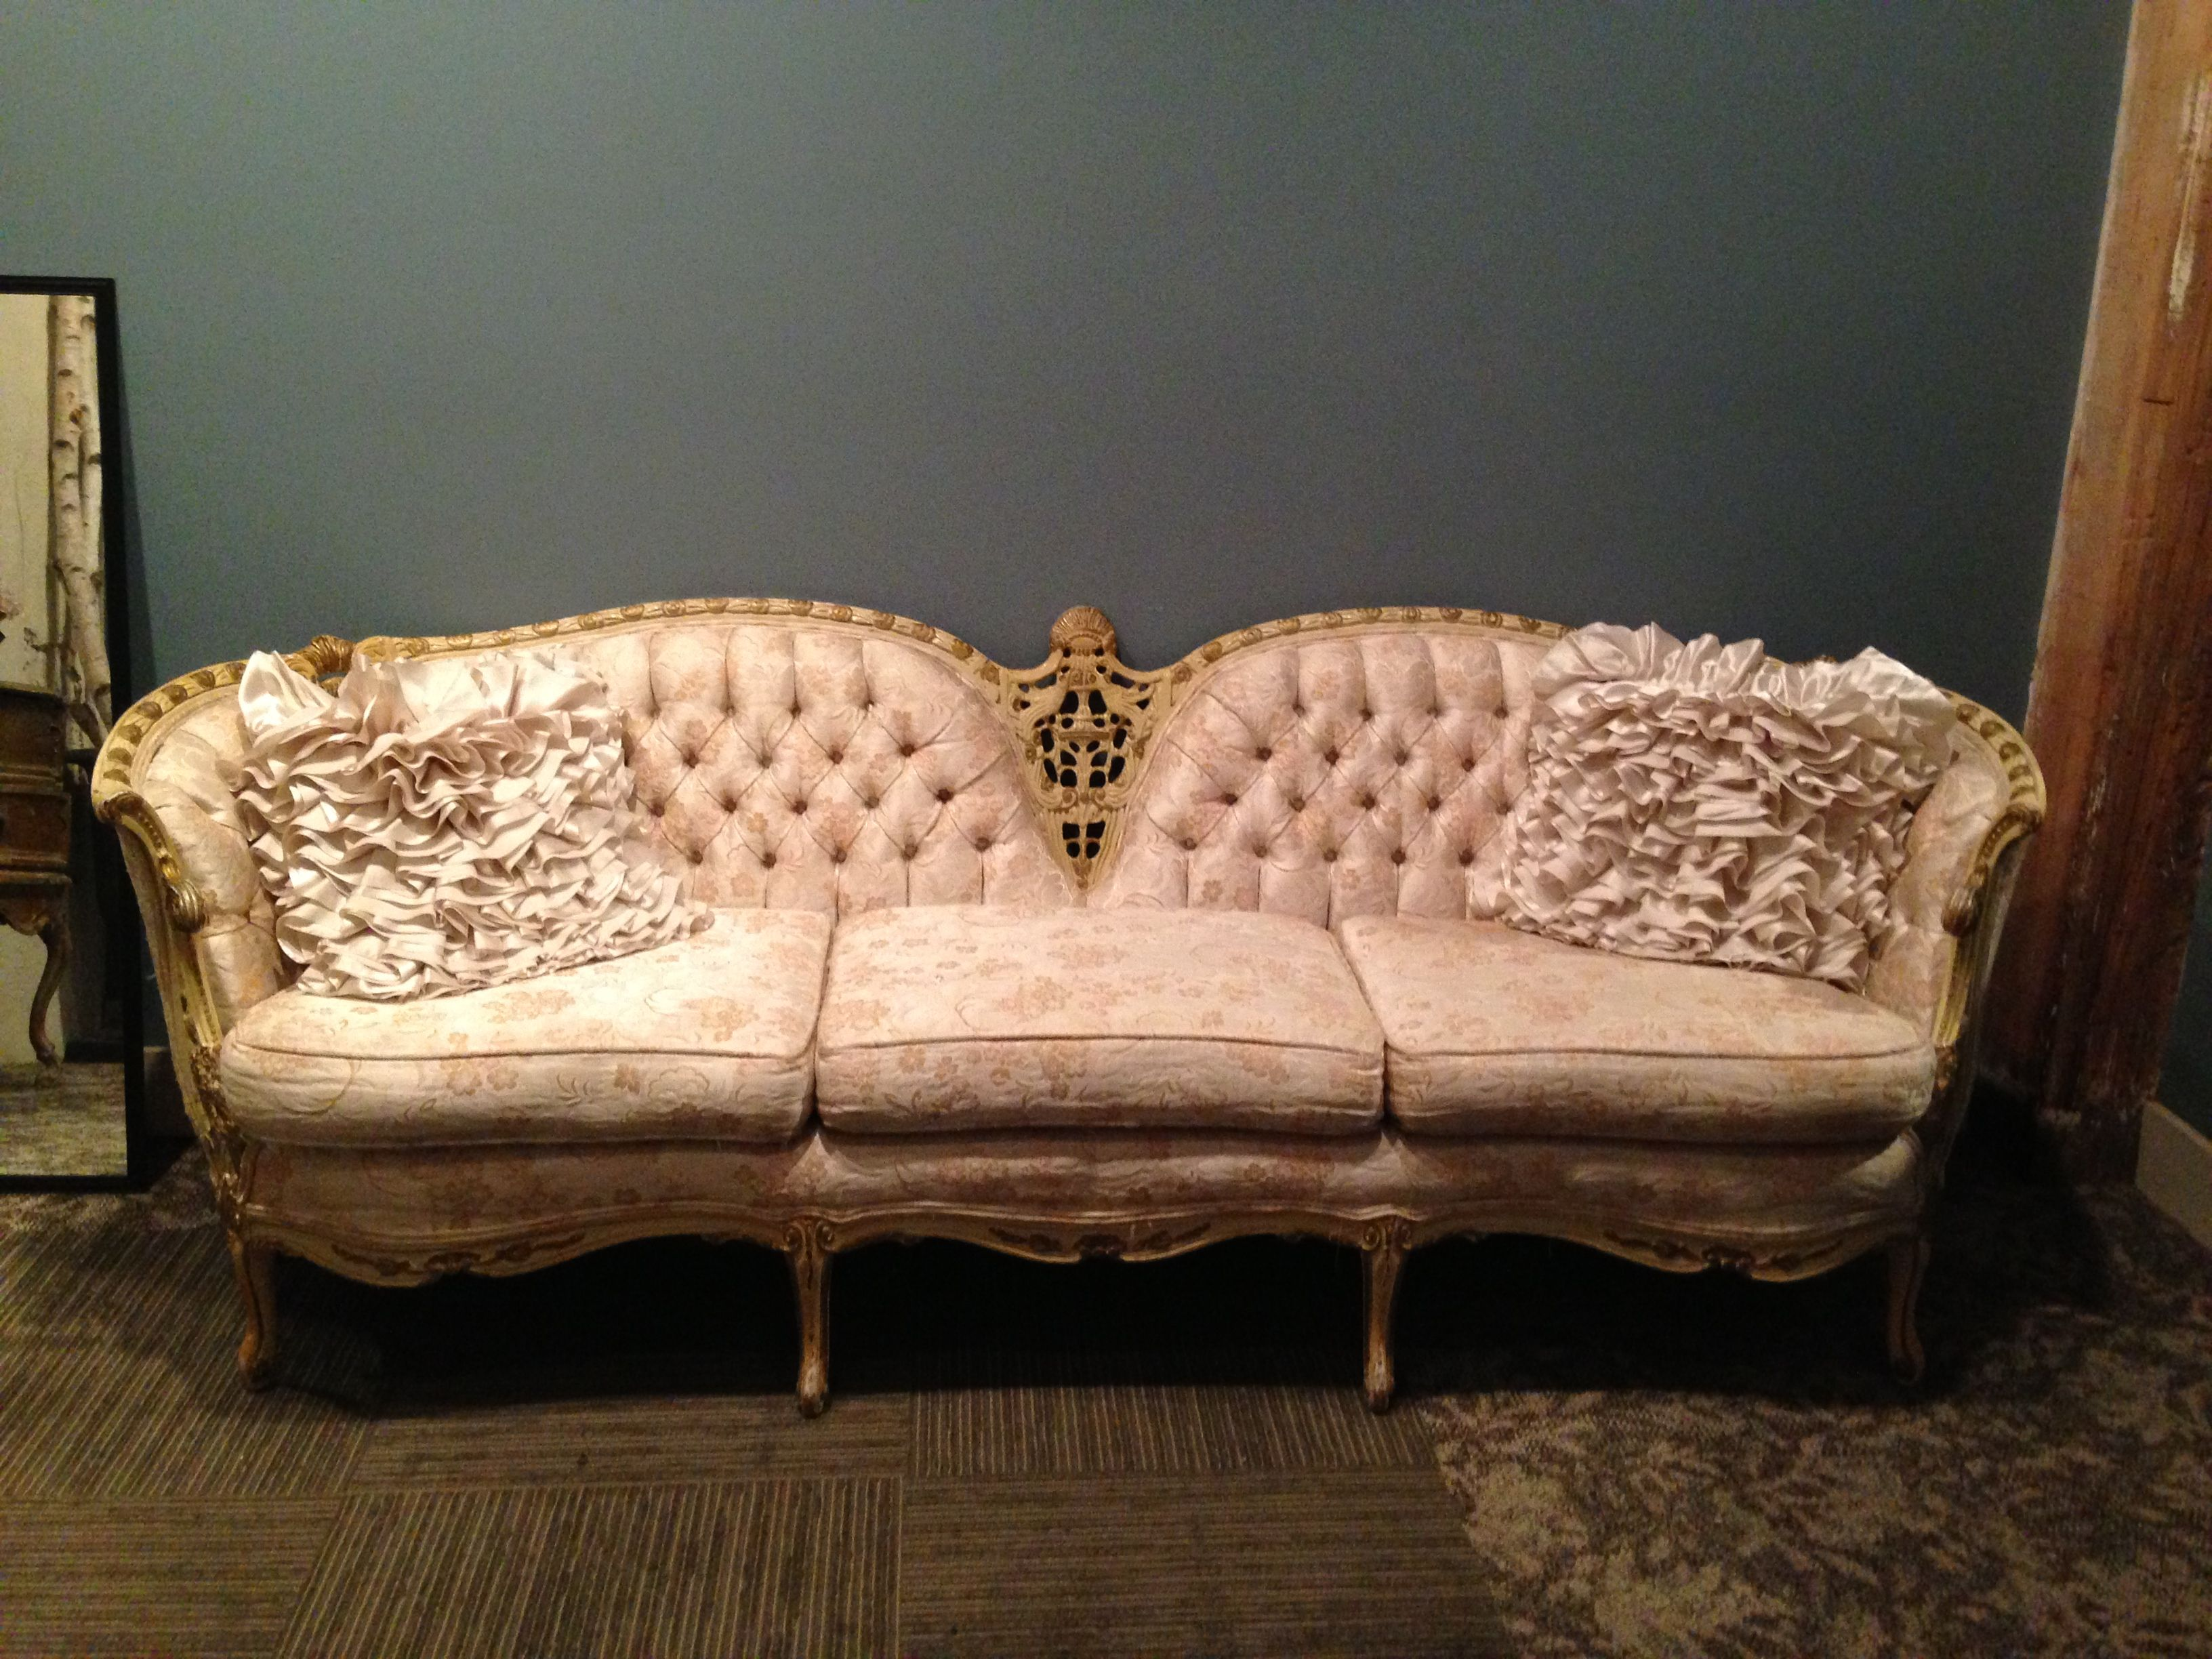 8 Foot Victorian Sofa In Cream And Blush We Also Have A Matching